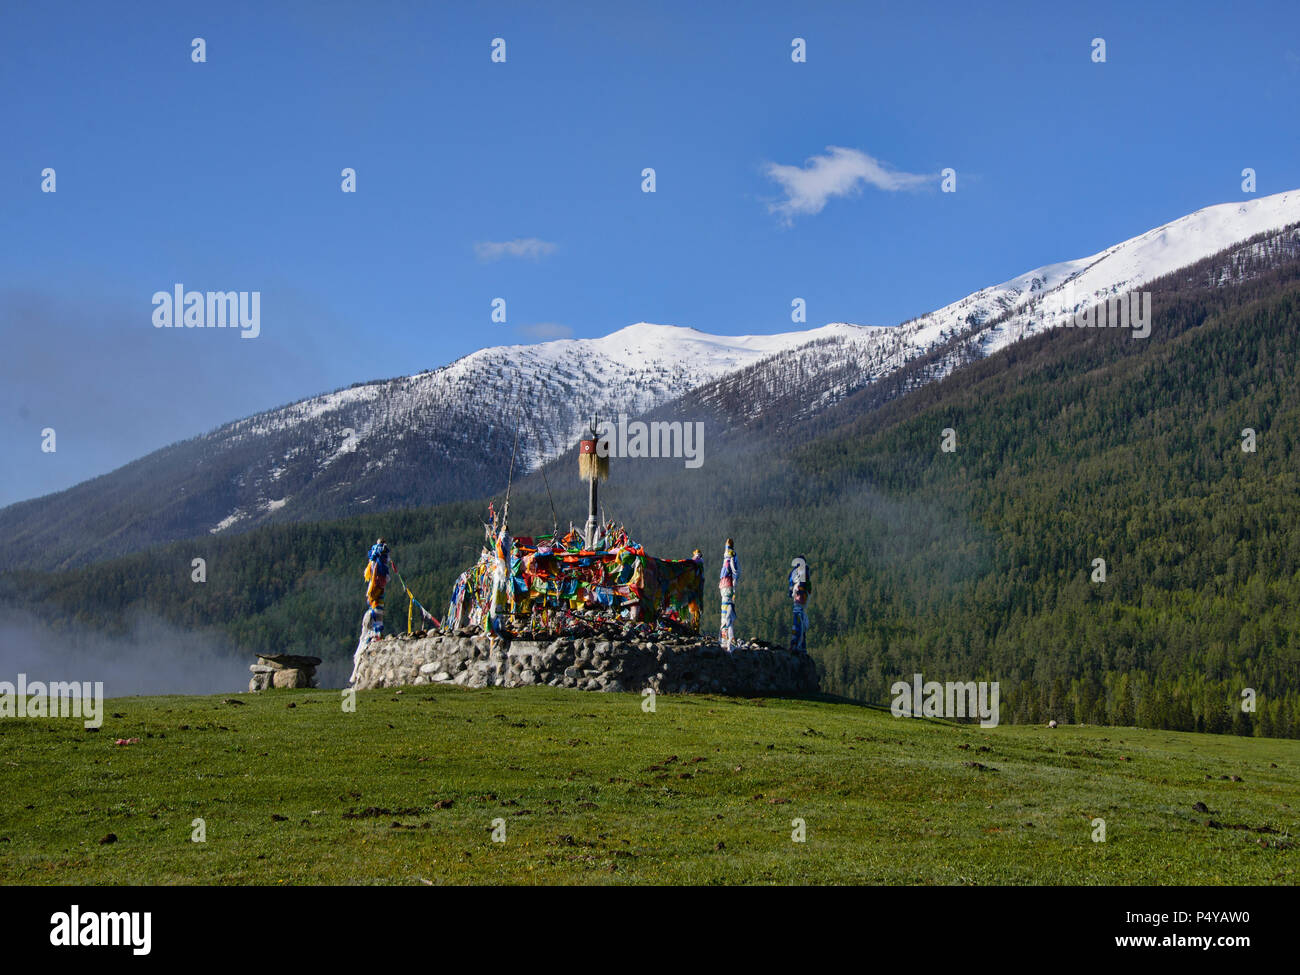 Kazakh stupa and prayer flags, Kanas Lake National Park, Xinjiang, China Stock Photo